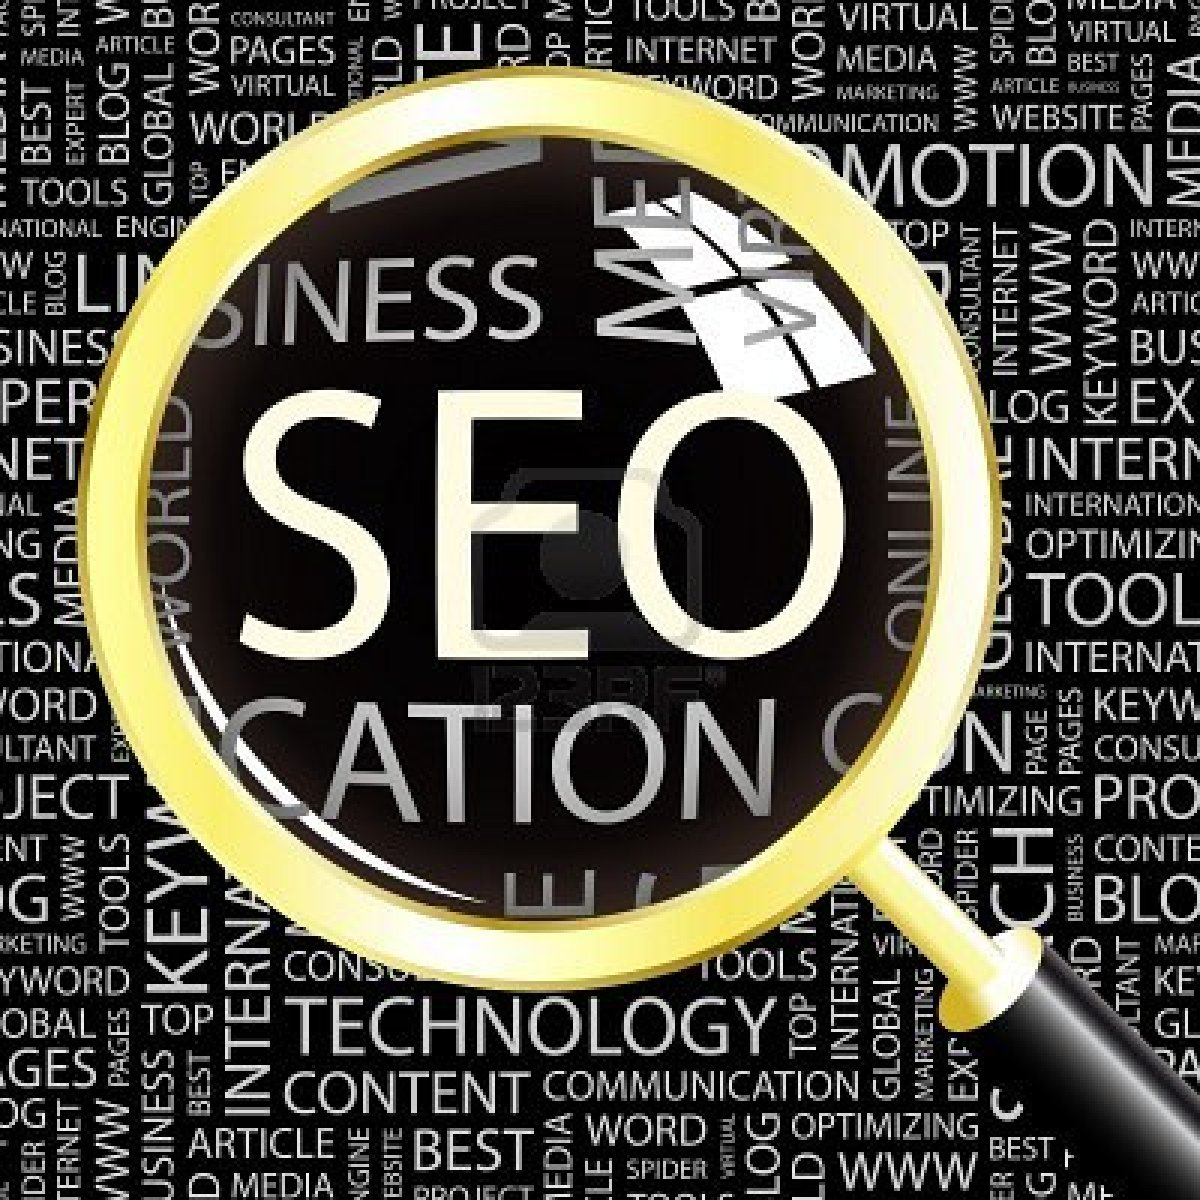 Worldwide SEO Results